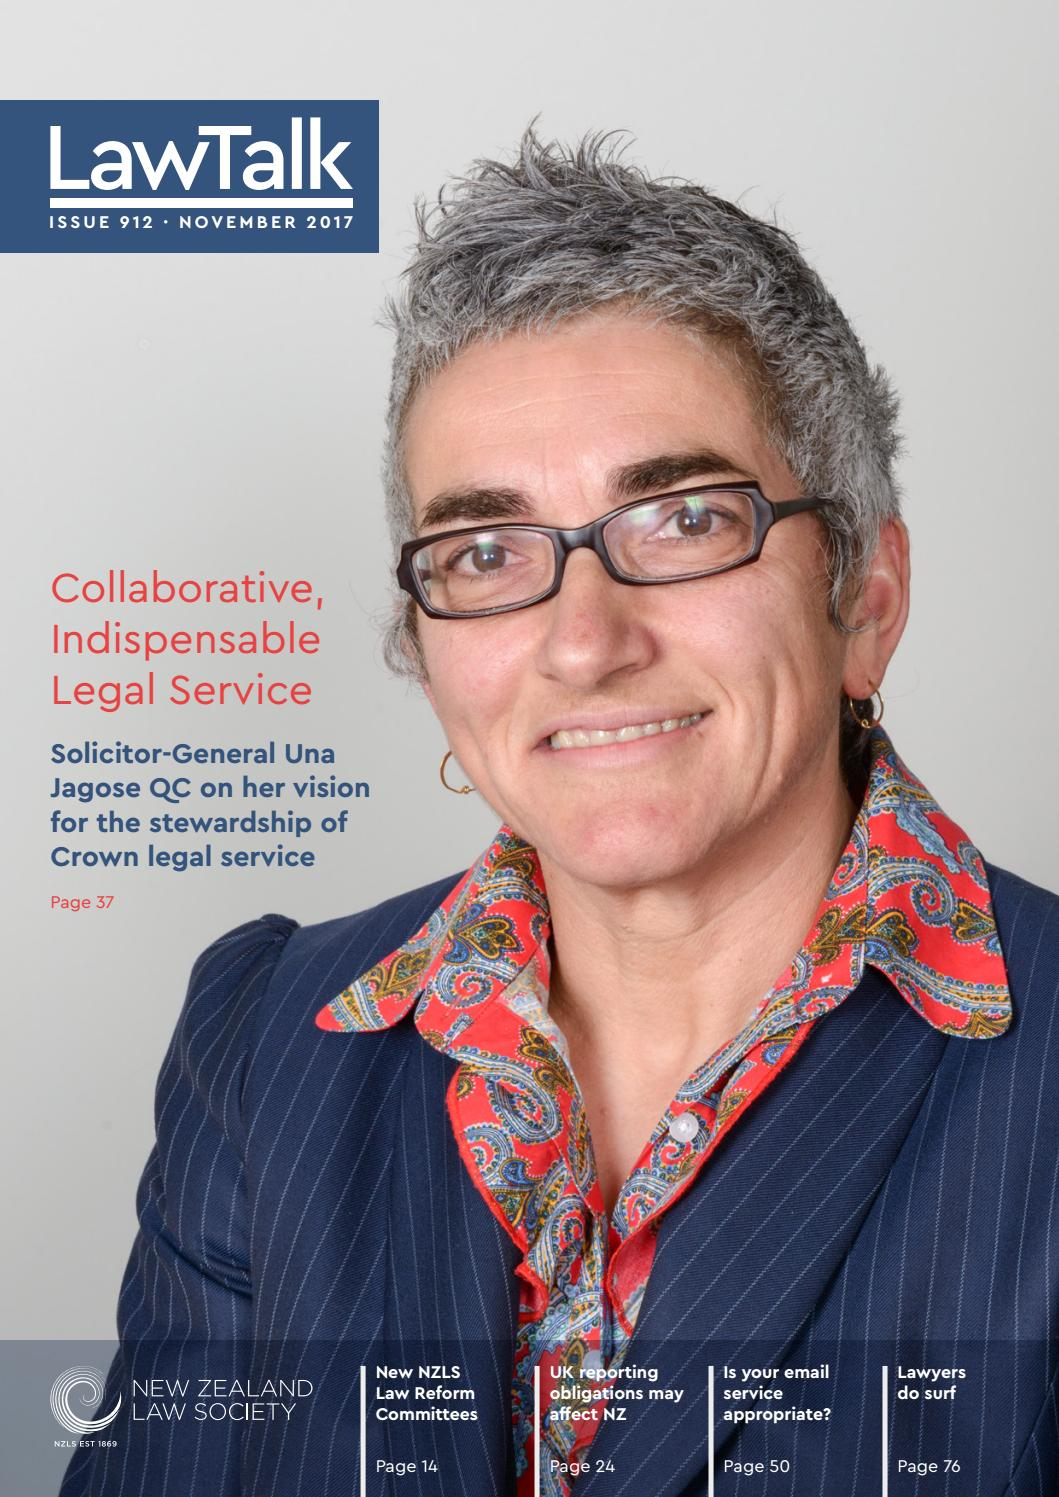 Lawtalk 912 By Nz Law Society Issuu